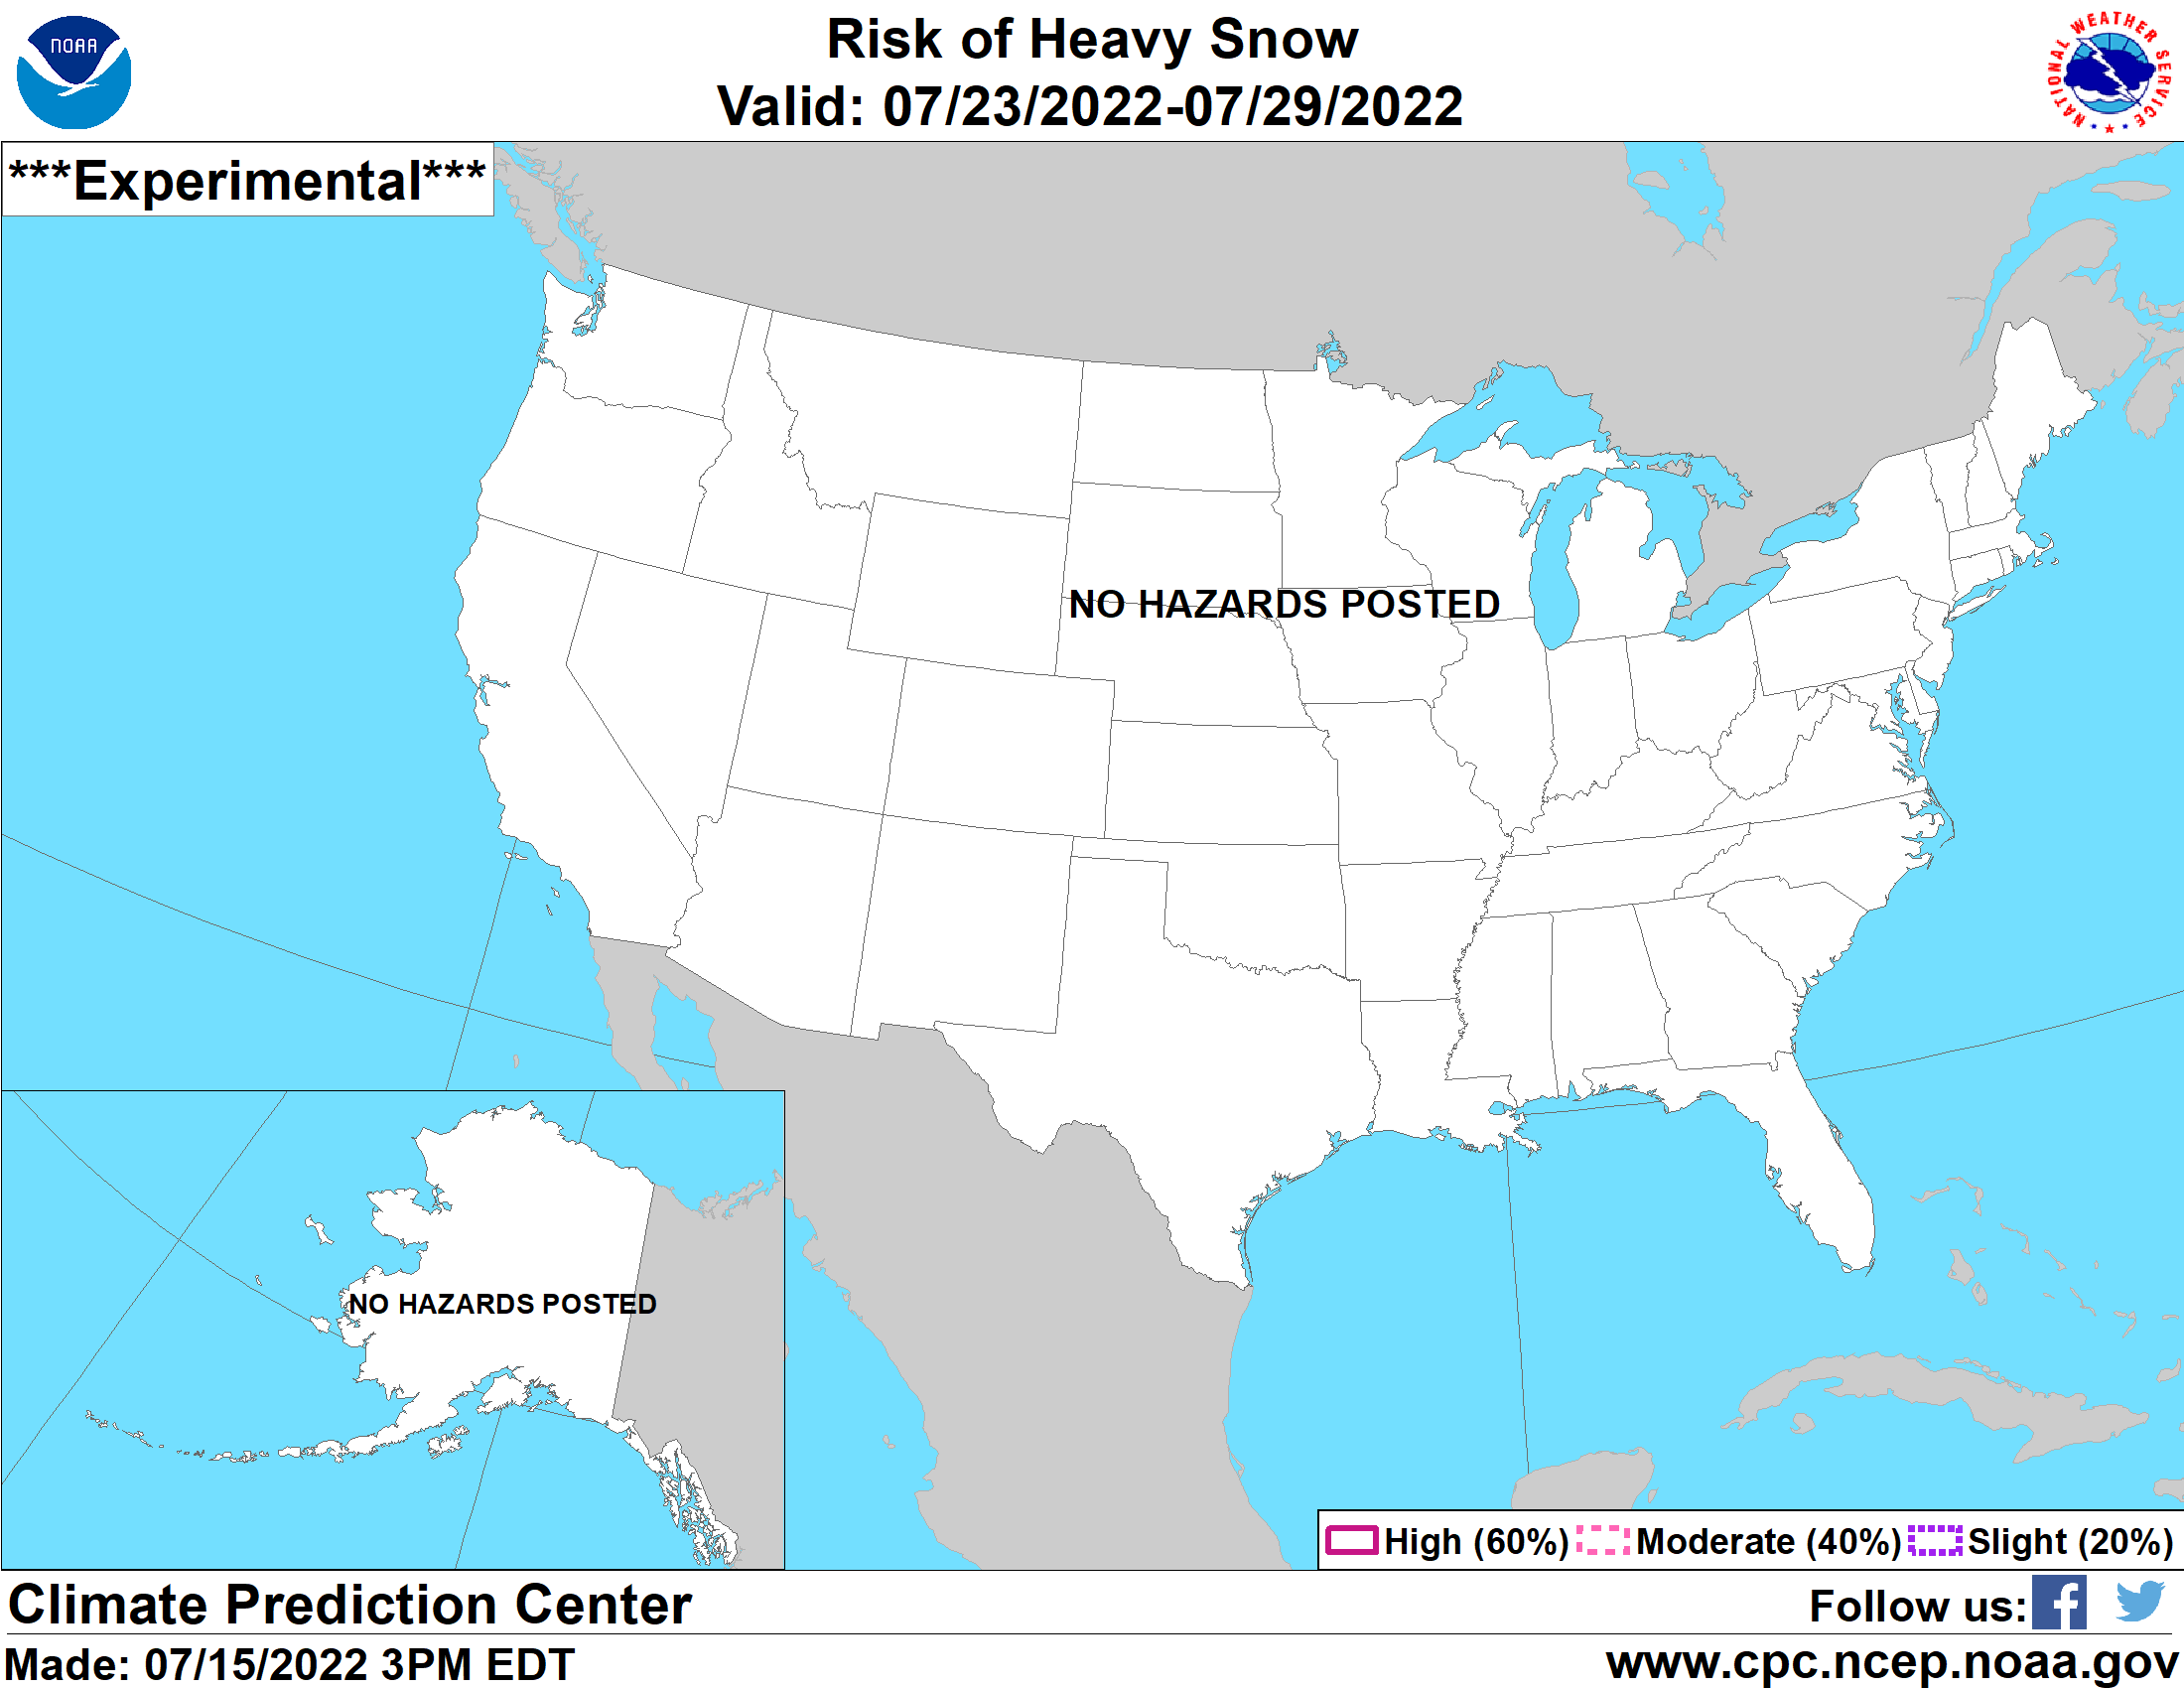 United States 8-14 Day Probabilistic Snow Hazards Outlook